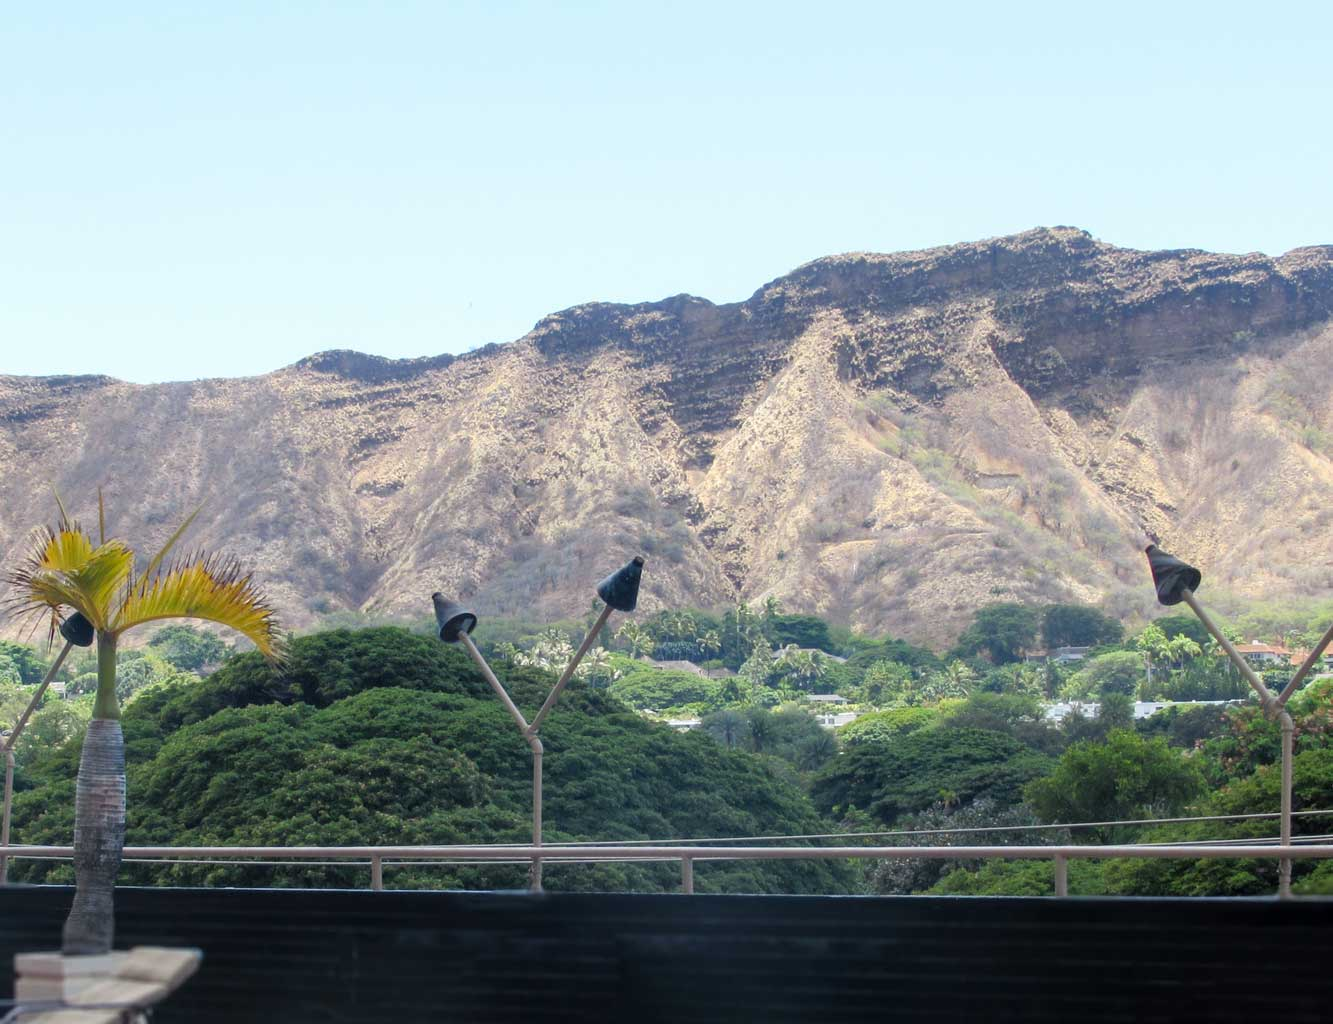 Diamond Head - Honolulu Travel Guide - 45 things to do in Honolulu - Christobel Travel